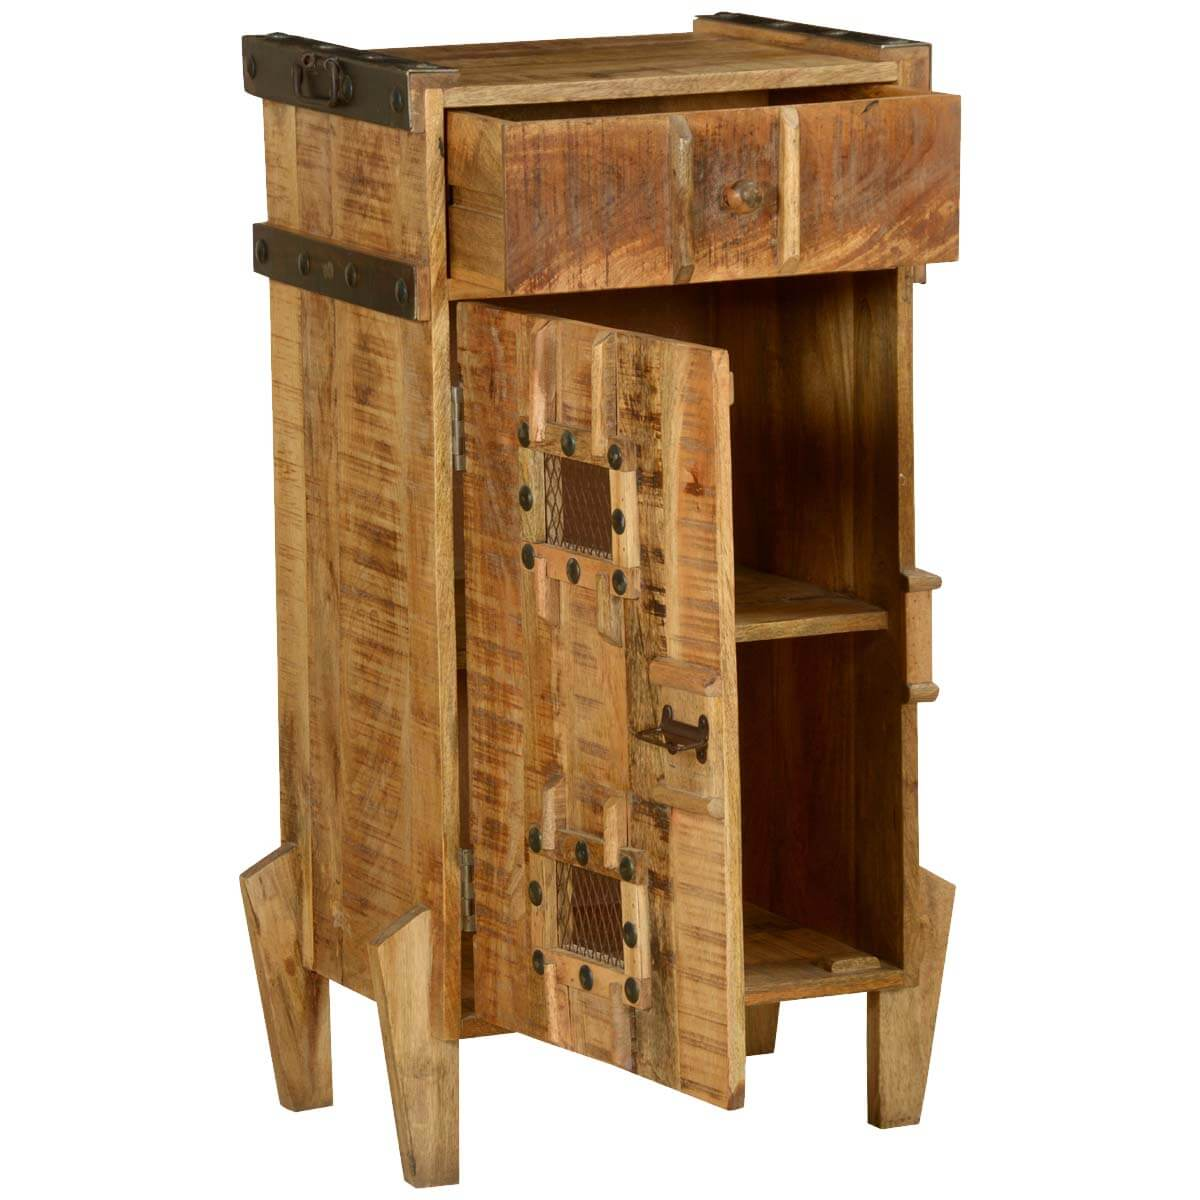 Gothic tower standing farmhouse rustic storage cabinet for Farmhouse tower